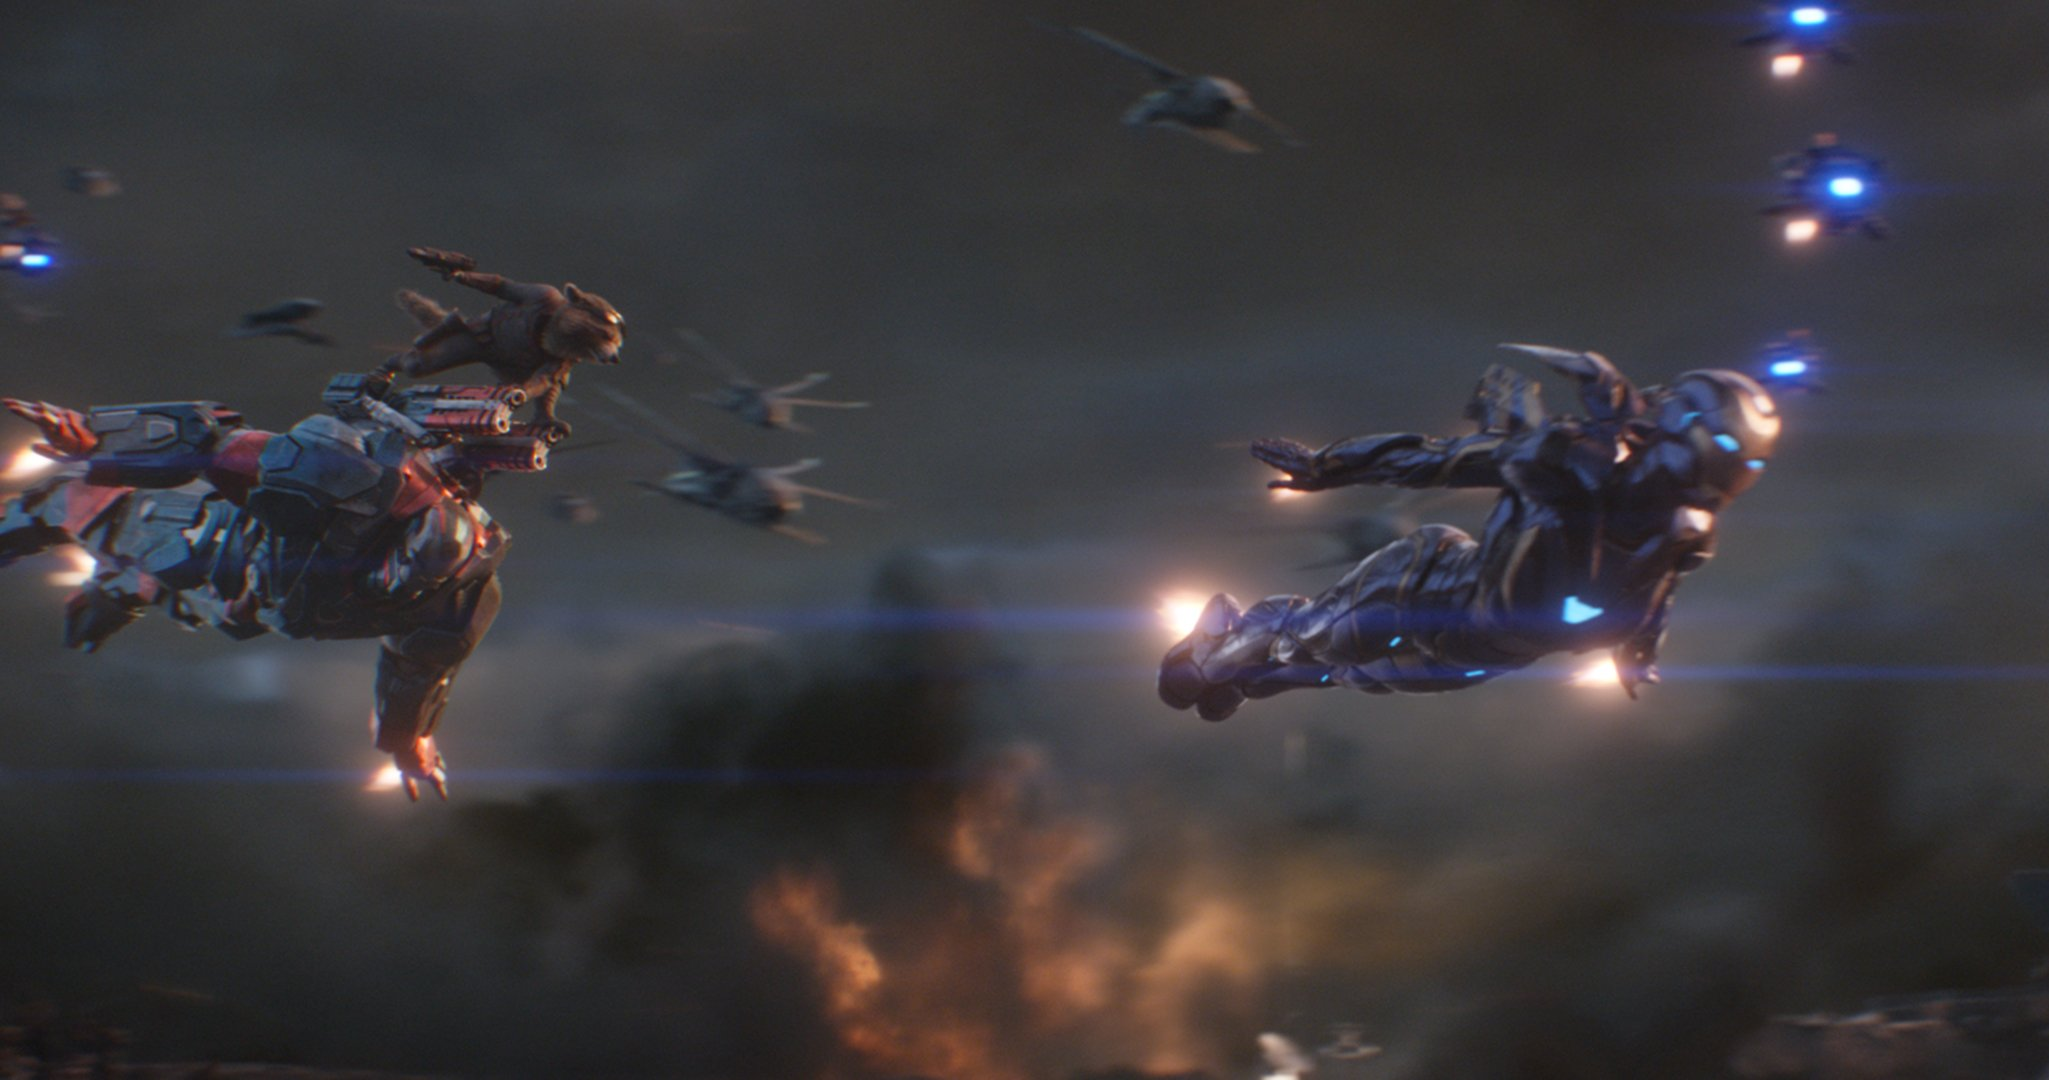 Photo du film Avengers: Endgame avec War Machine, Rocket et Rescue